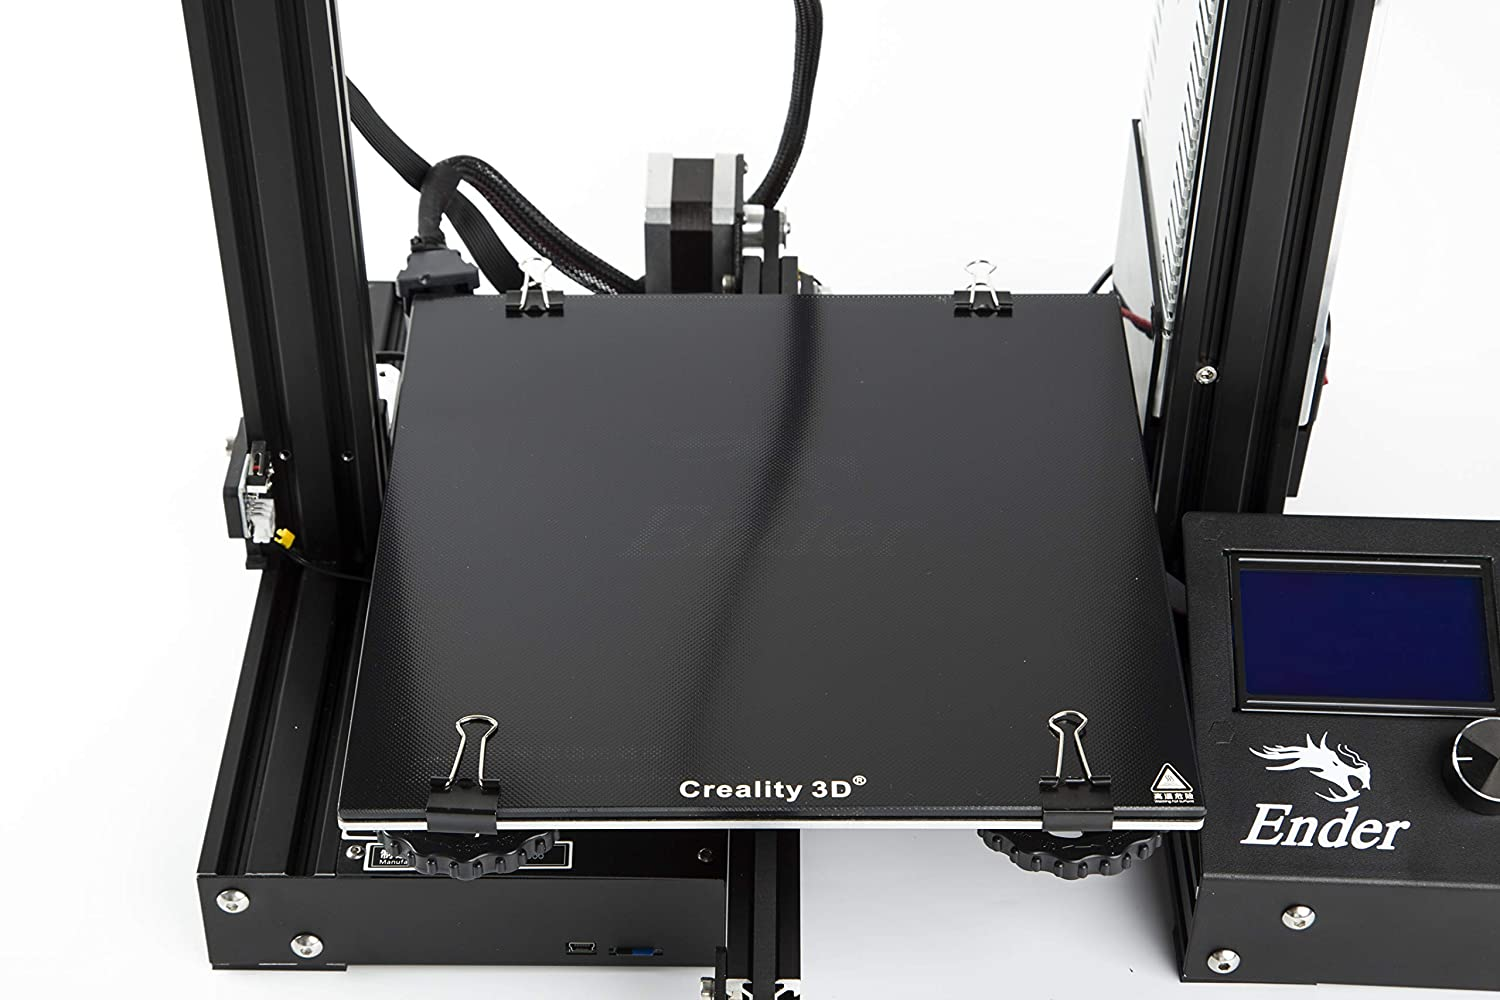 CHPOWER Creality Ender 3 Glass Bed, 3D Printer Glass Platform, Upgraded Hot Heated Bed Build Surface Tempered Glass Plate, 235x235MM ender3 glass bed